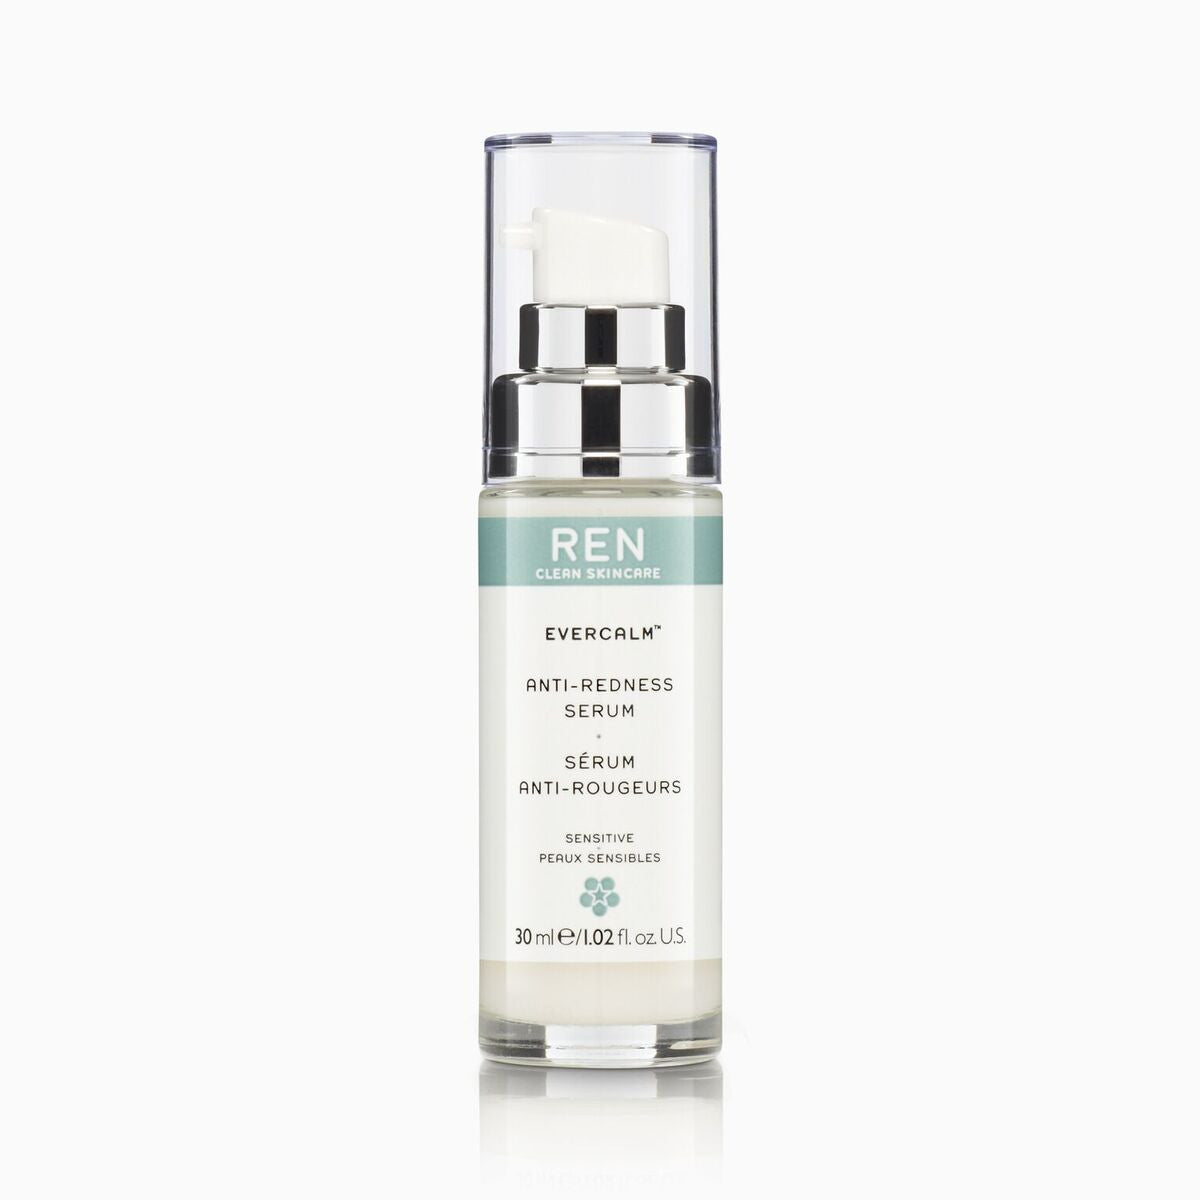 ren - anti redness serum